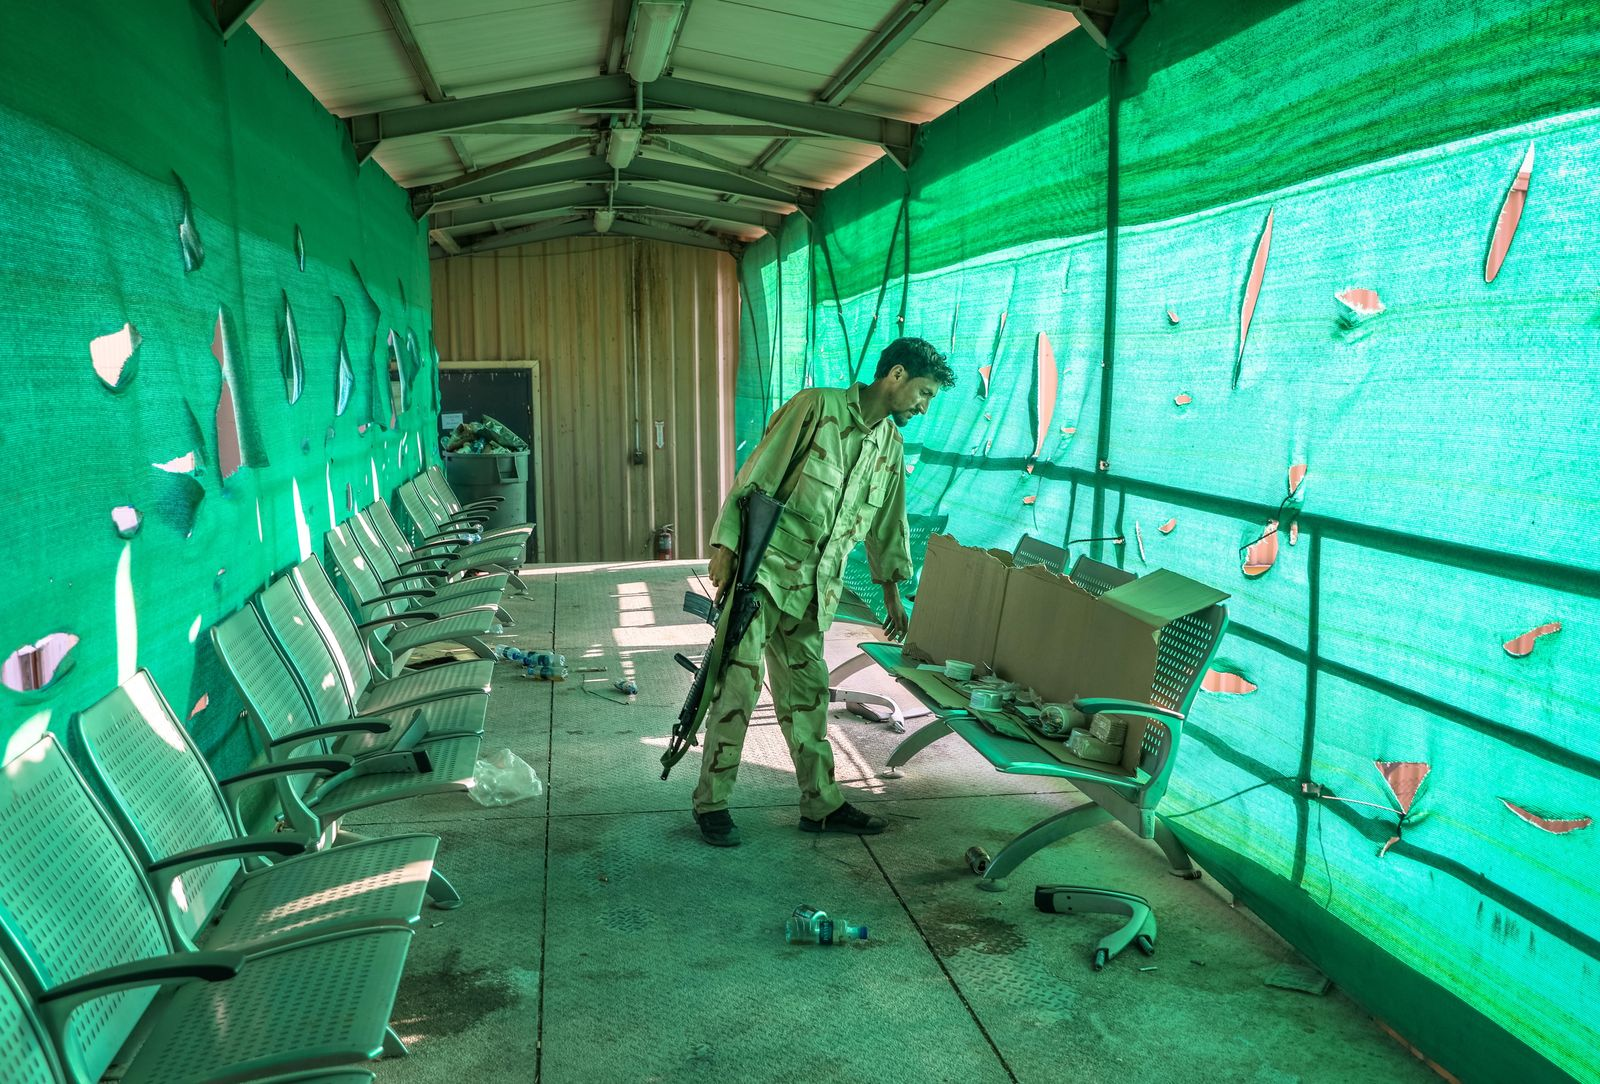 US Forces Departed Bagram Airfield After Nearly 20 Years